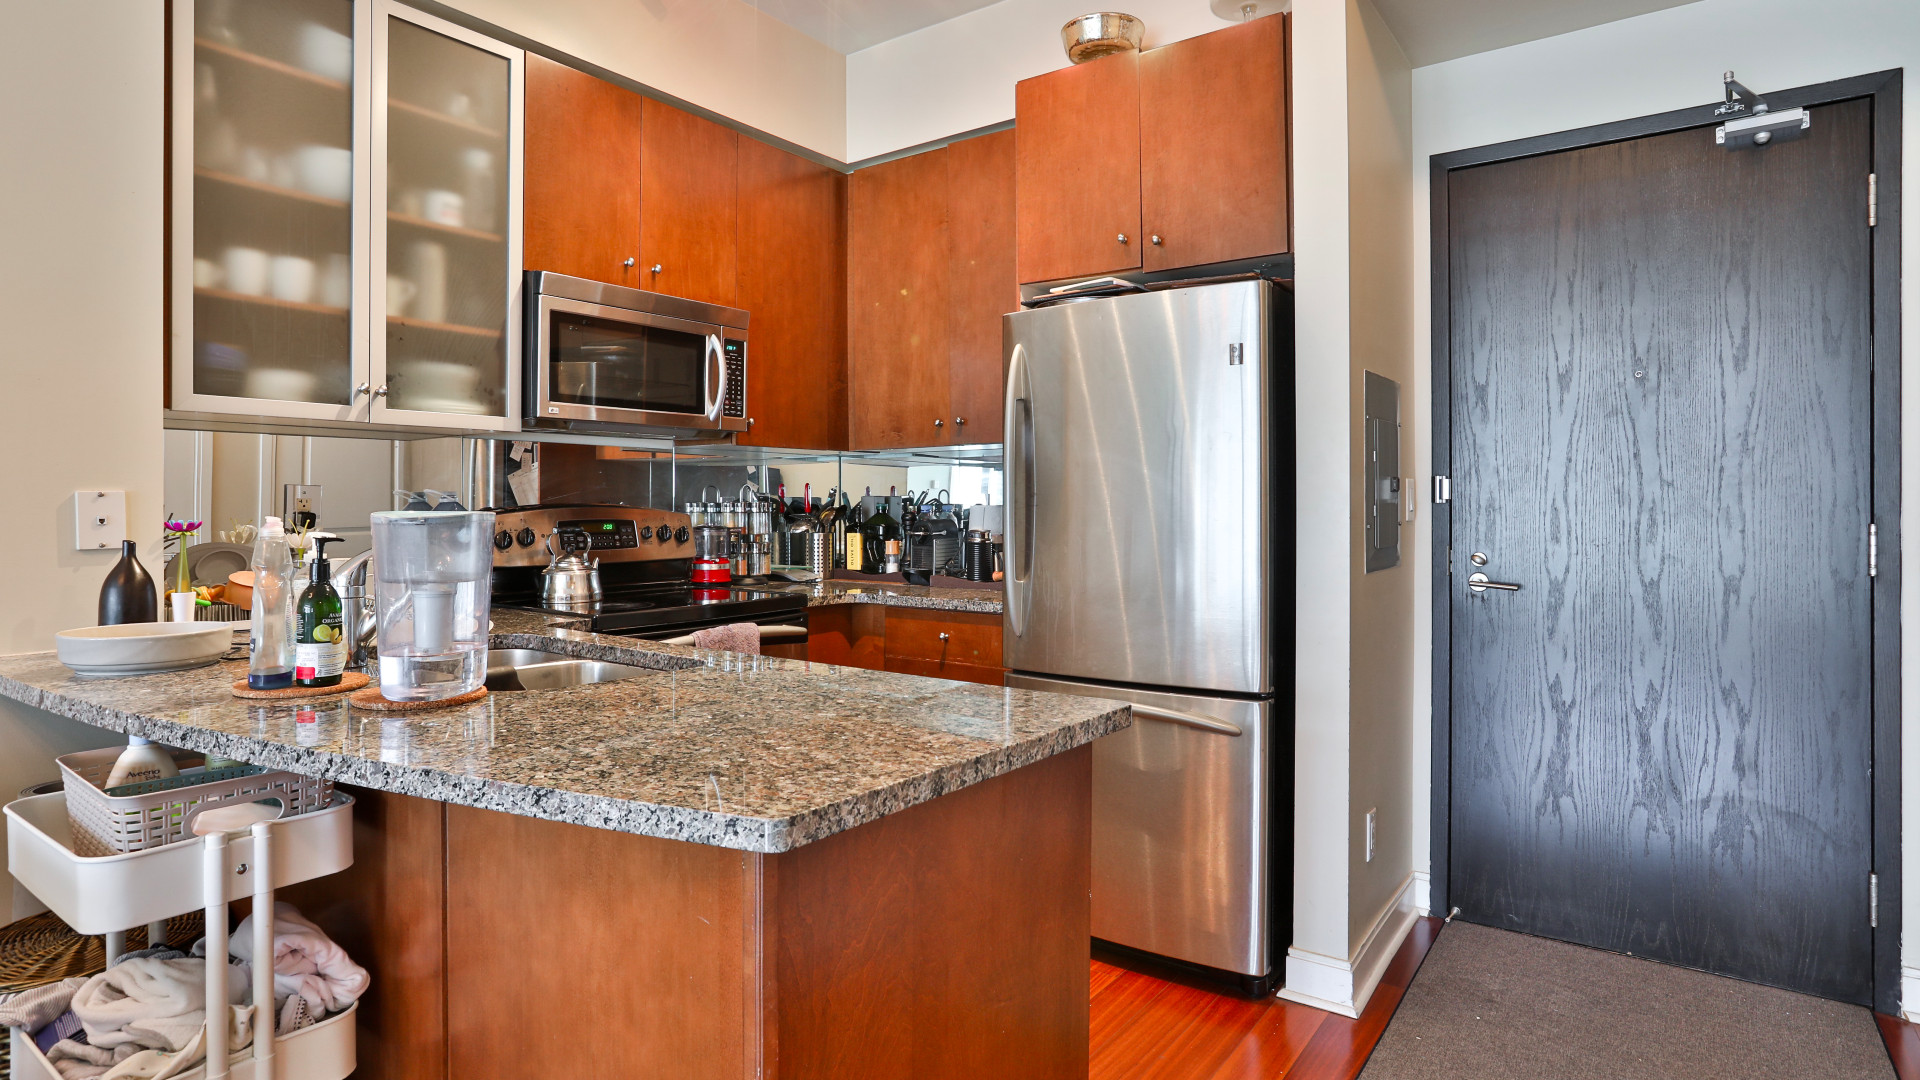 A photo of the kitchen area with granite countertops.